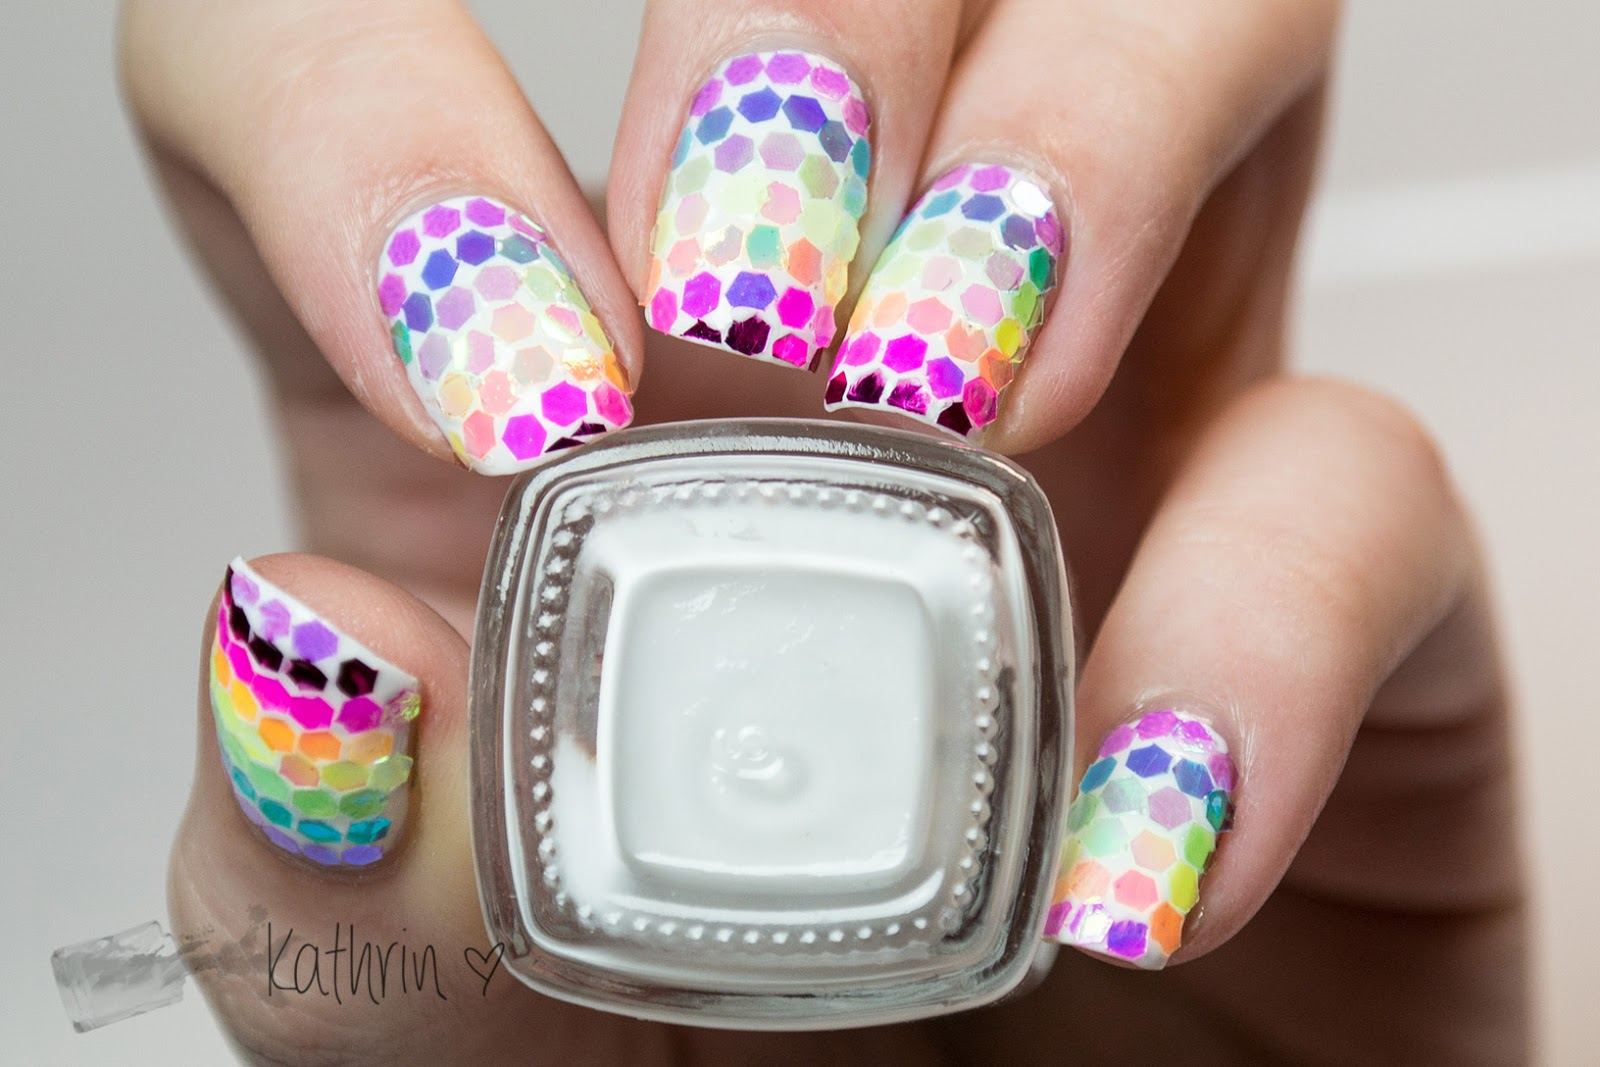 http://rainpow-nails.blogspot.de/2015/01/regenbogen-reloaded-glequins-rainbow.html